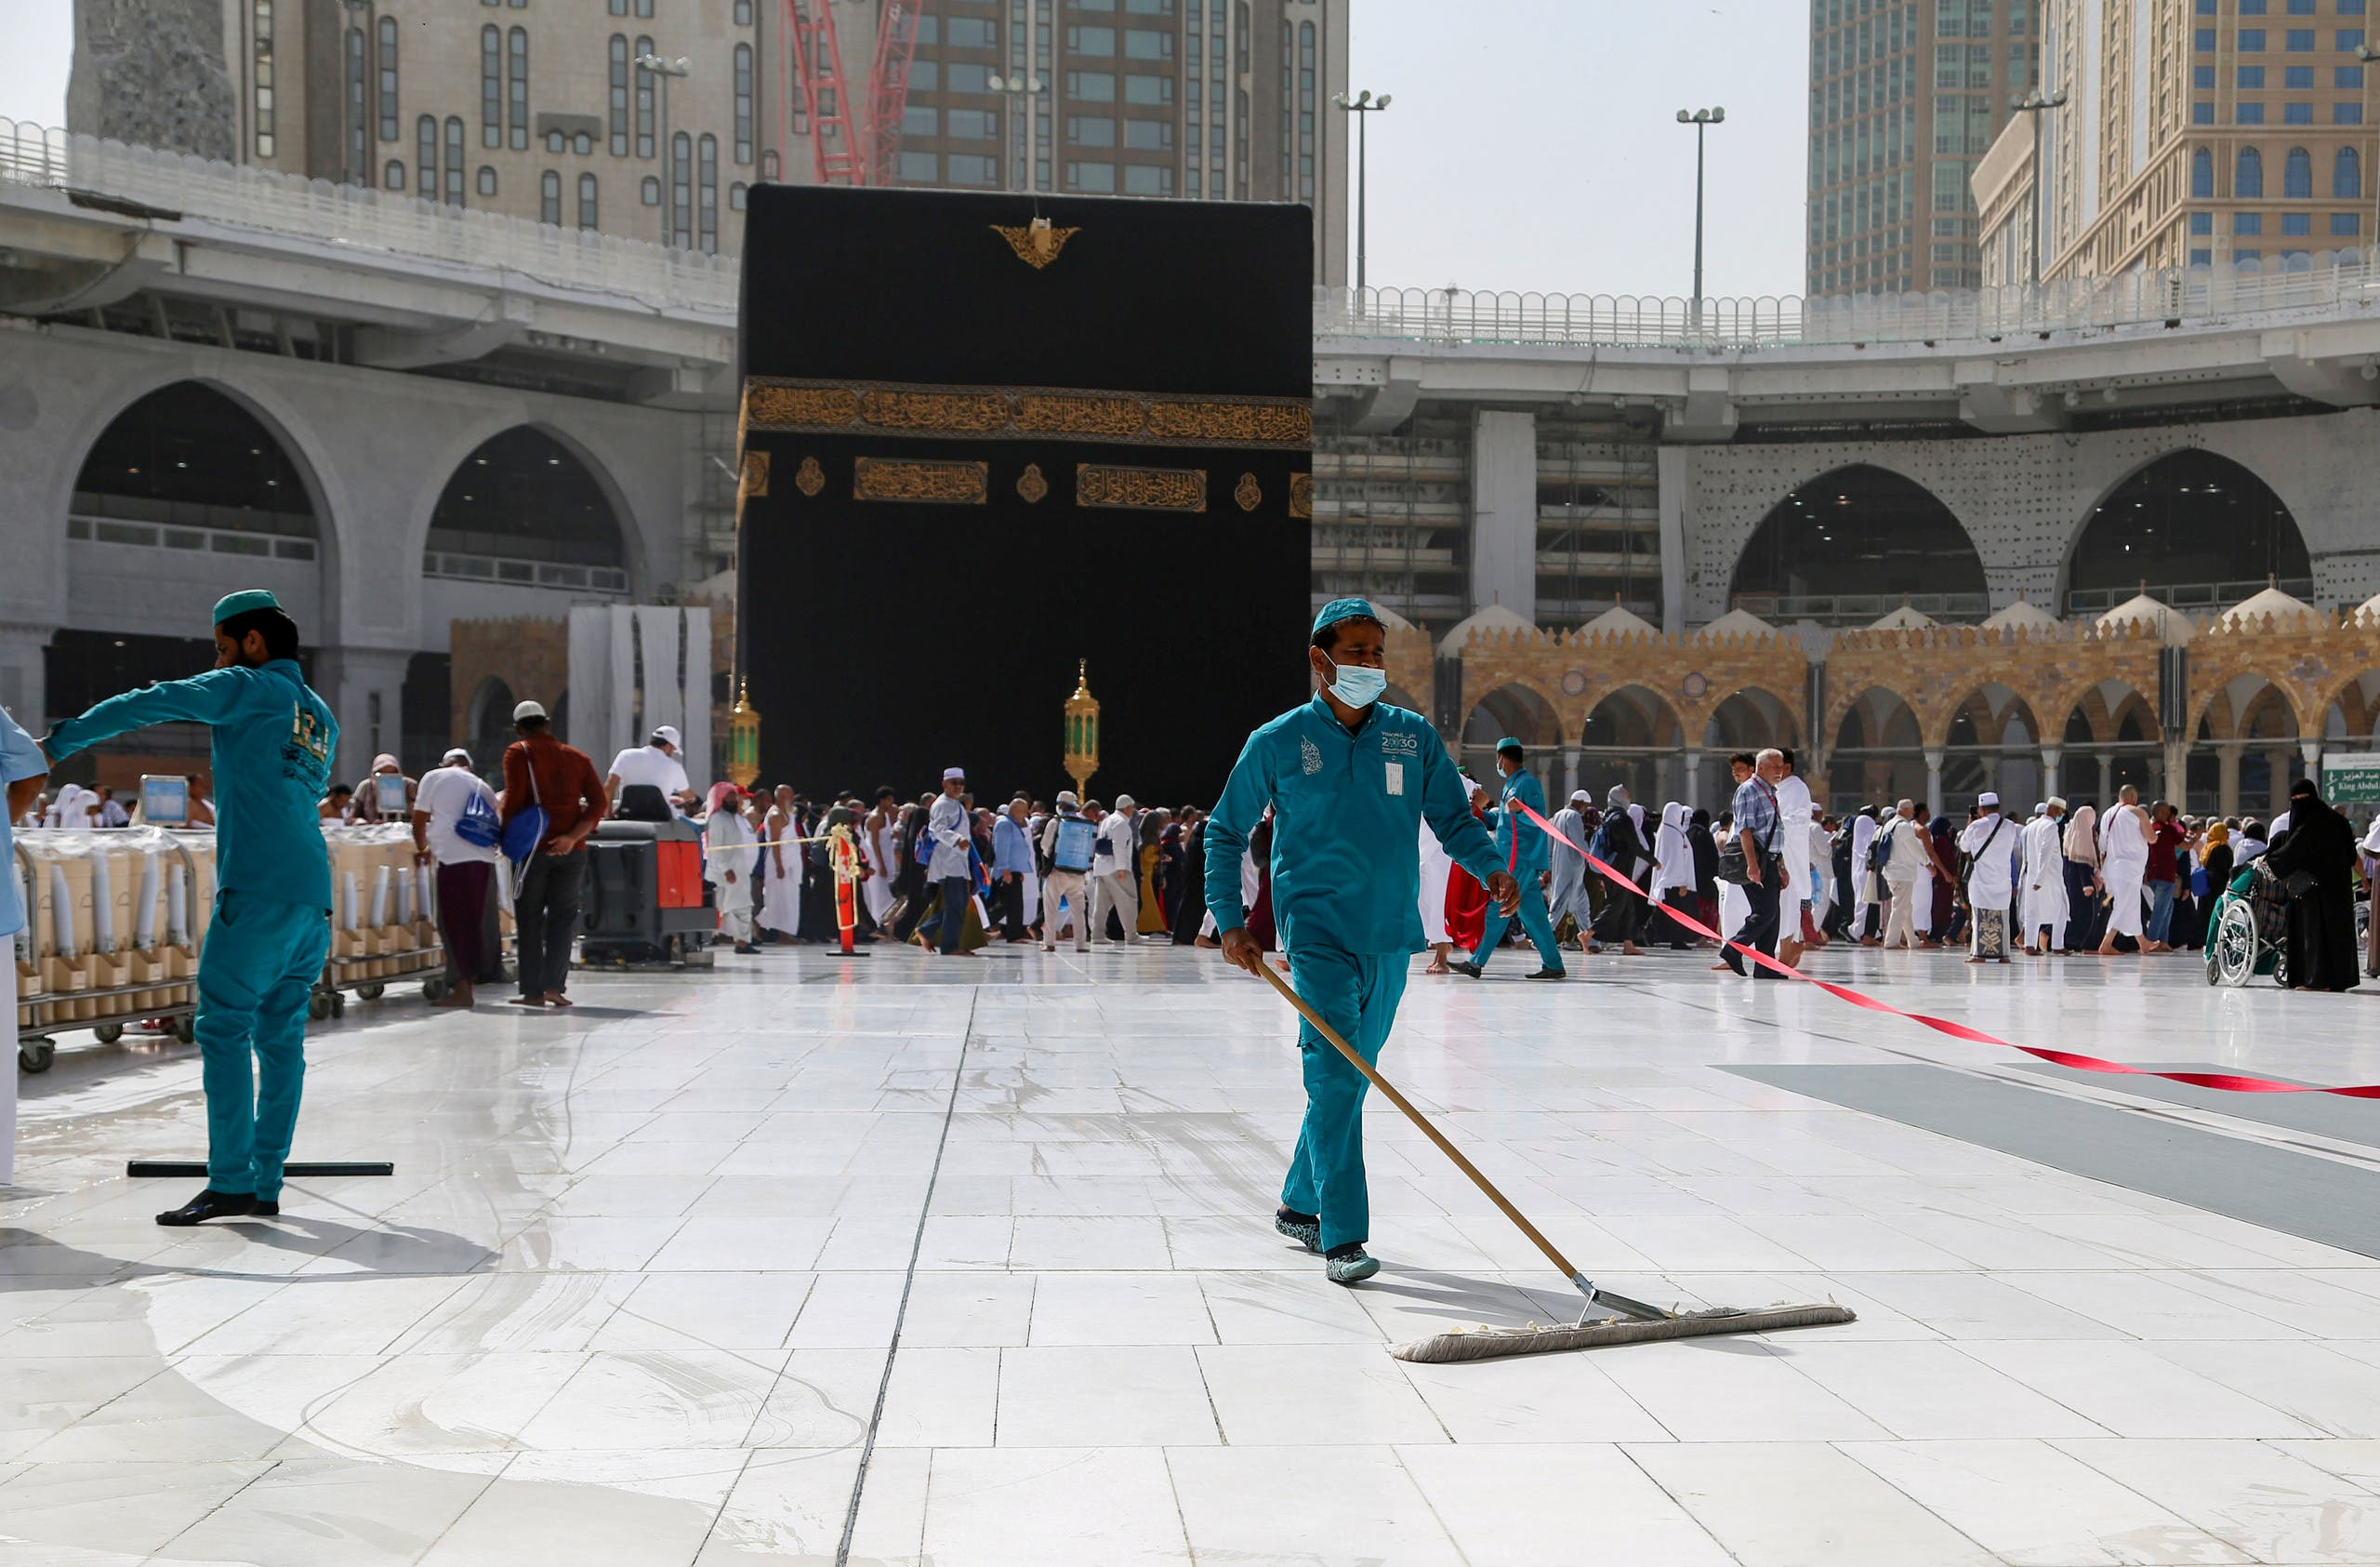 Cleaners wear protective face masks as they swipe the floor at the Kaaba in the Grand mosque. (File photo: Reuters)